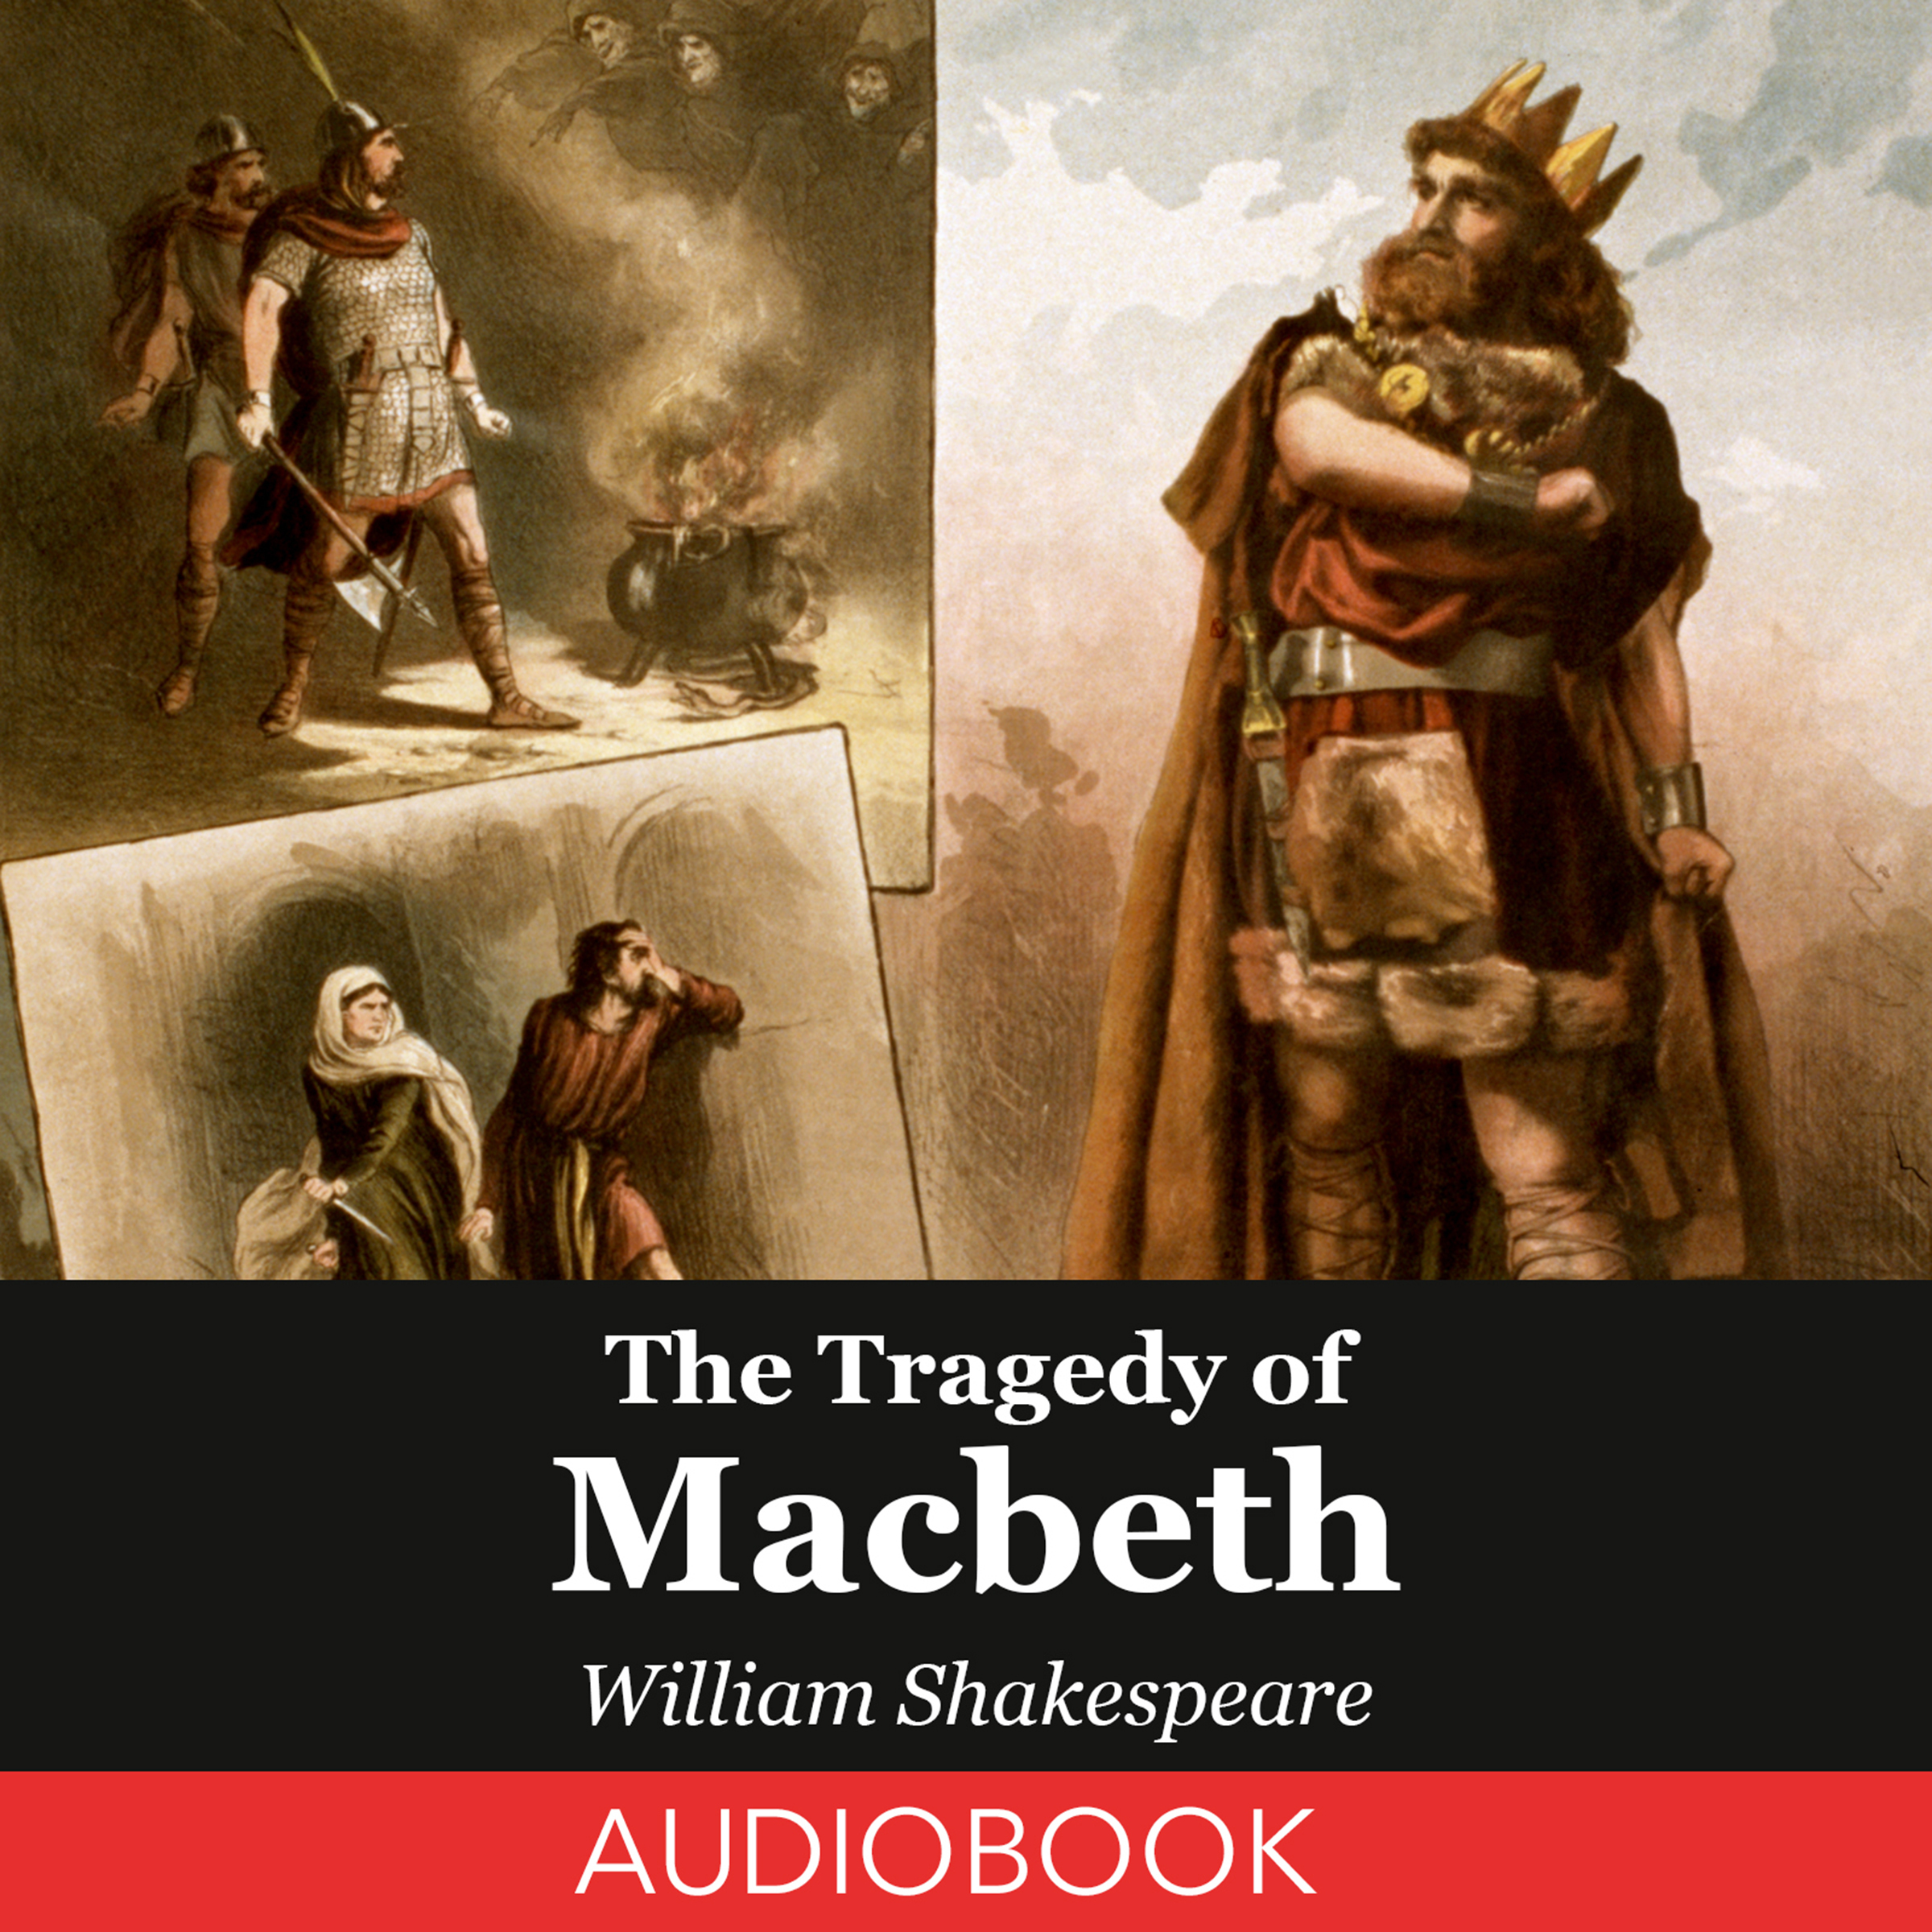 macbeths four characteristics as the tragic hero in shakespearean play the tragedy of macbeth Macbeth tragic hero essay in the play macbeth, by william shakespeare  although macbeth fails to meet quite a few characteristics of a tragic hero.